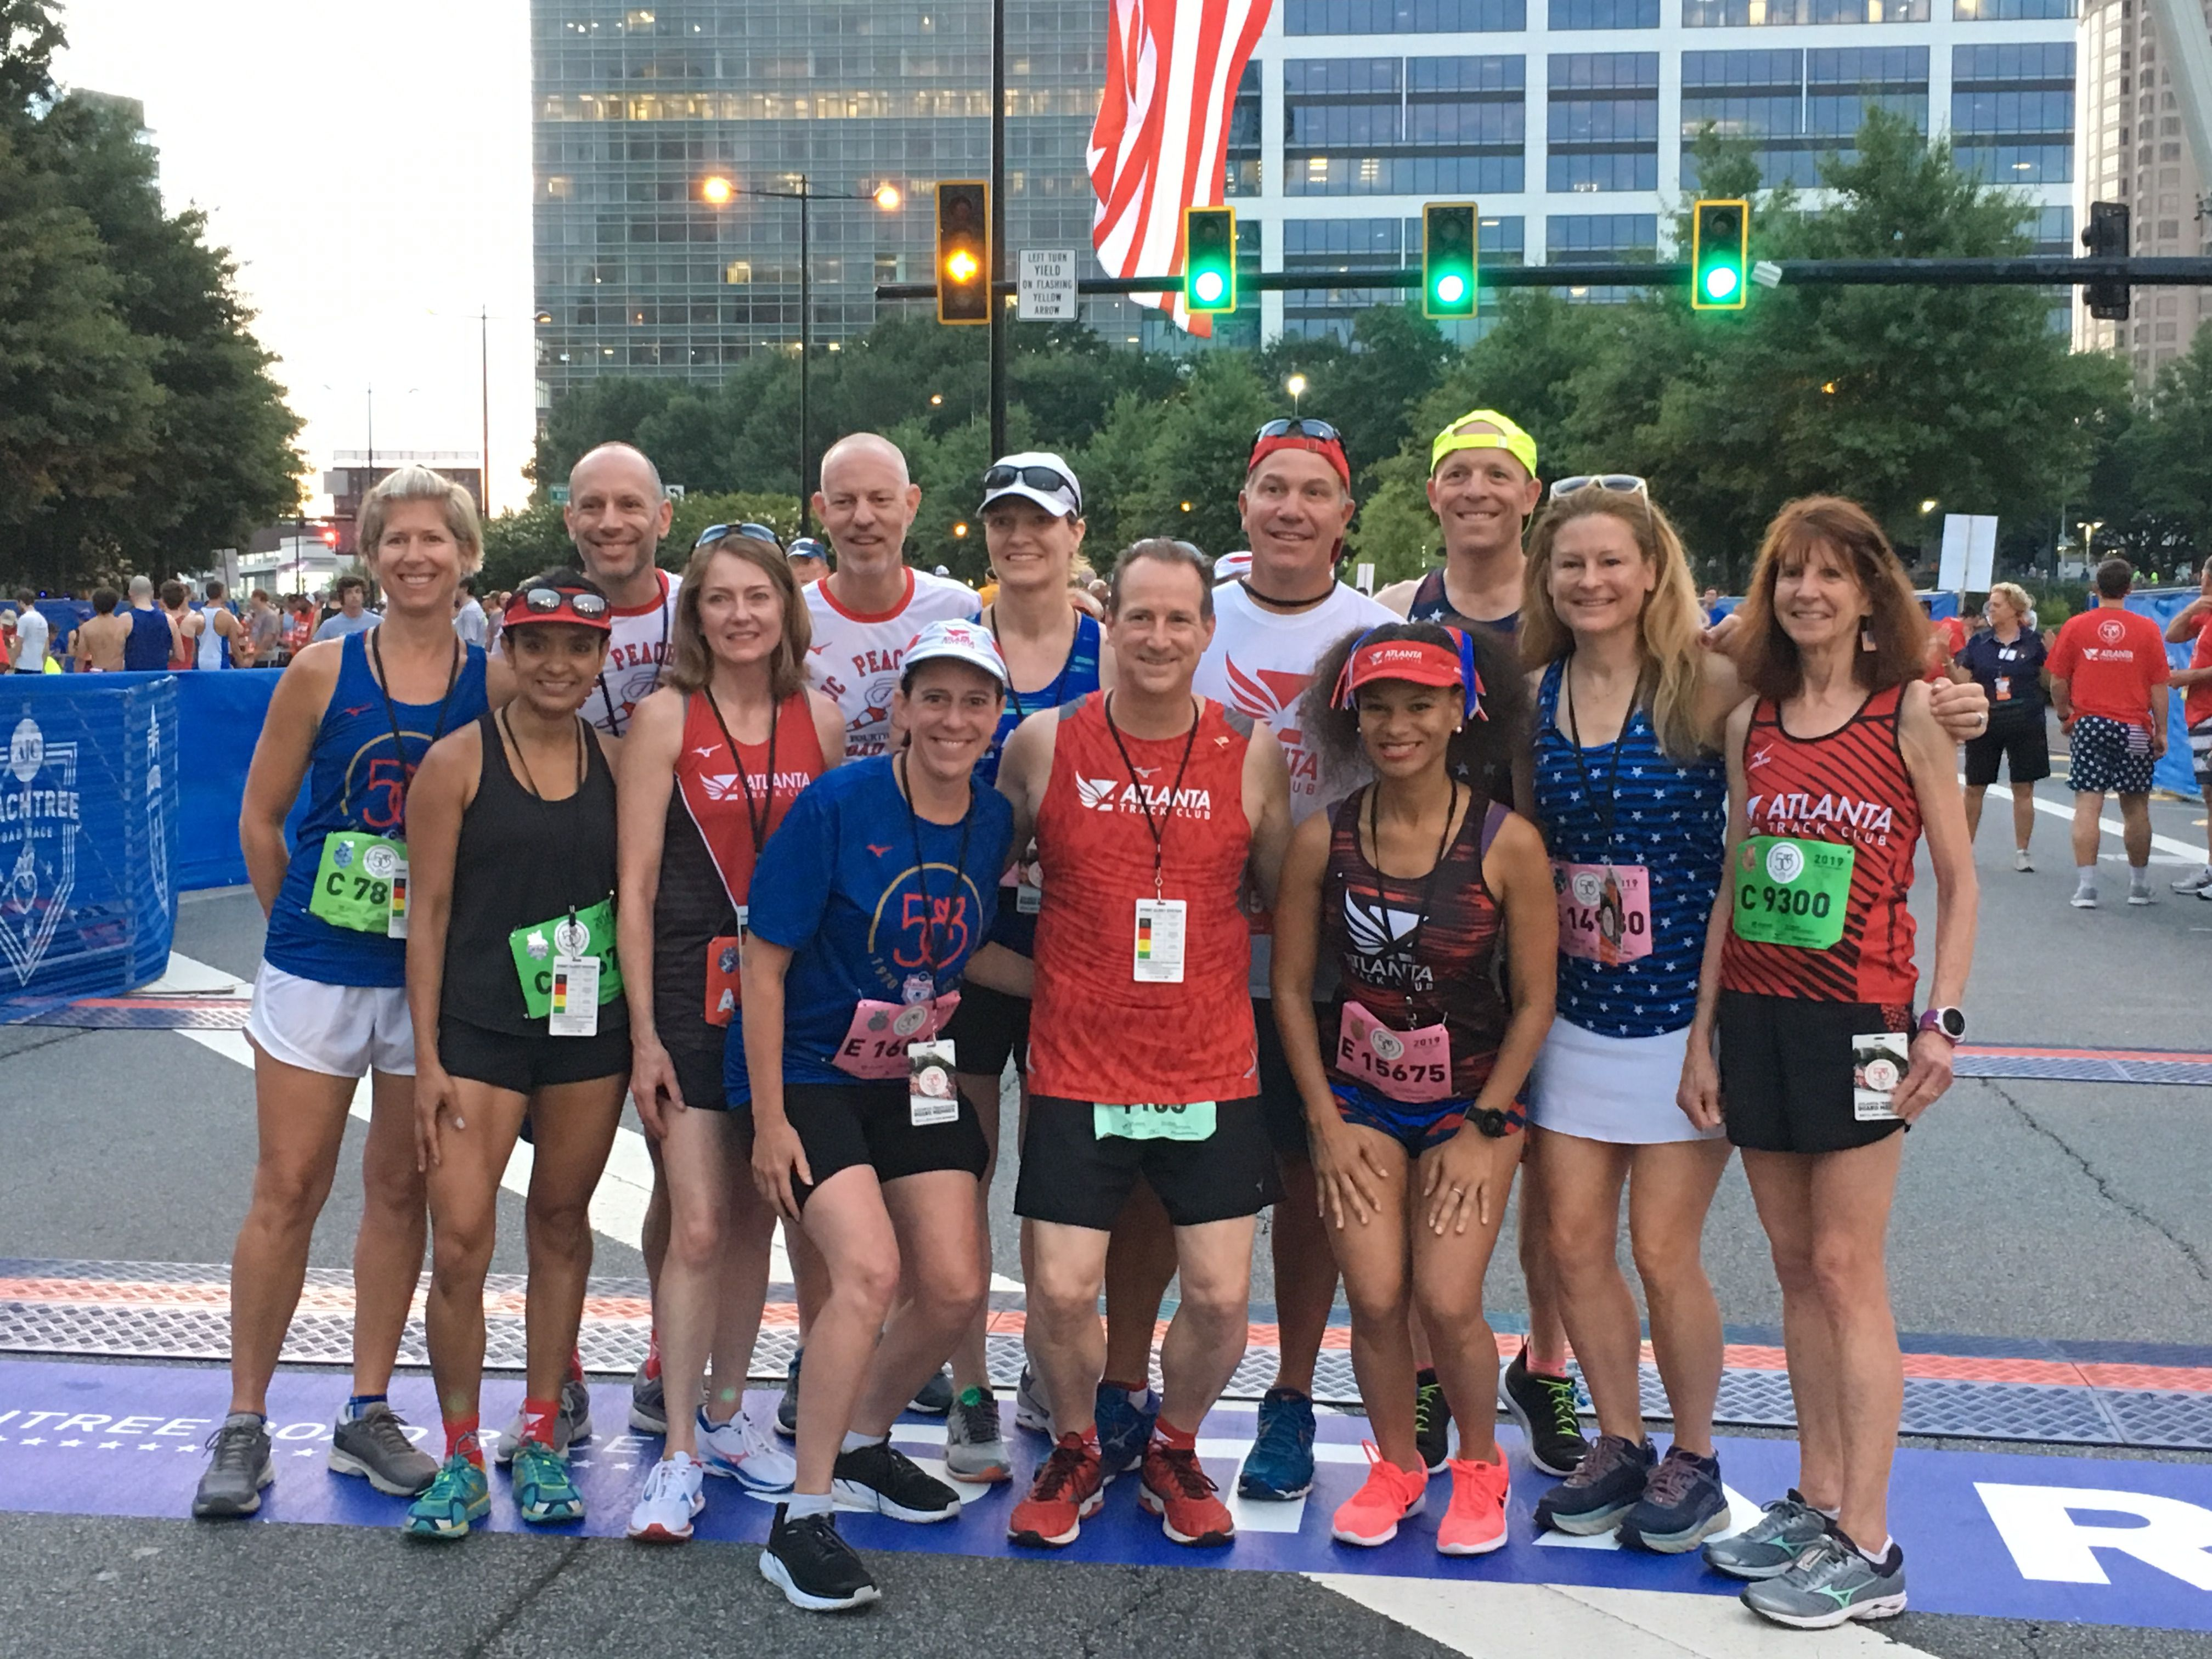 Members of Atlanta Track Club's Board of Directors at the AJC Peachtree Road Race on July 4, 2019.